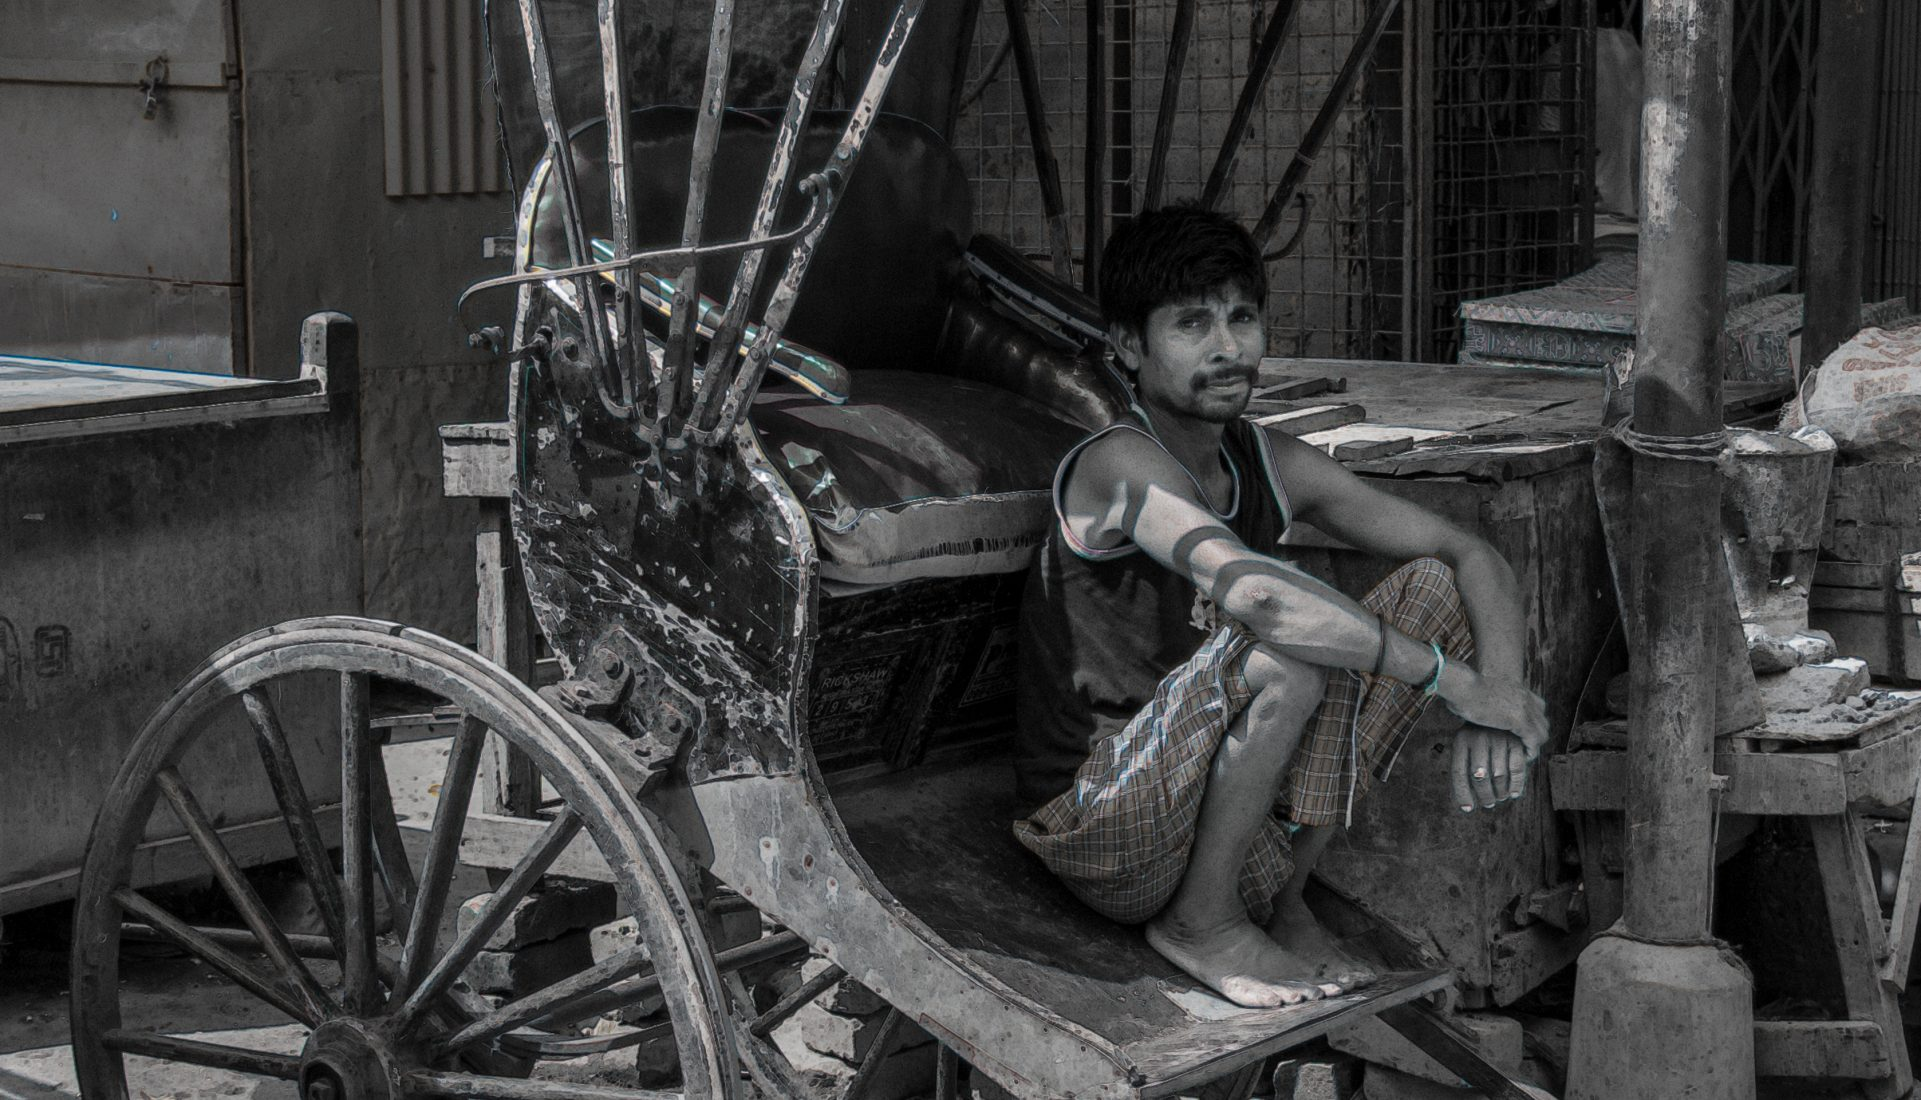 Rickshaw Pullers of Calcutta